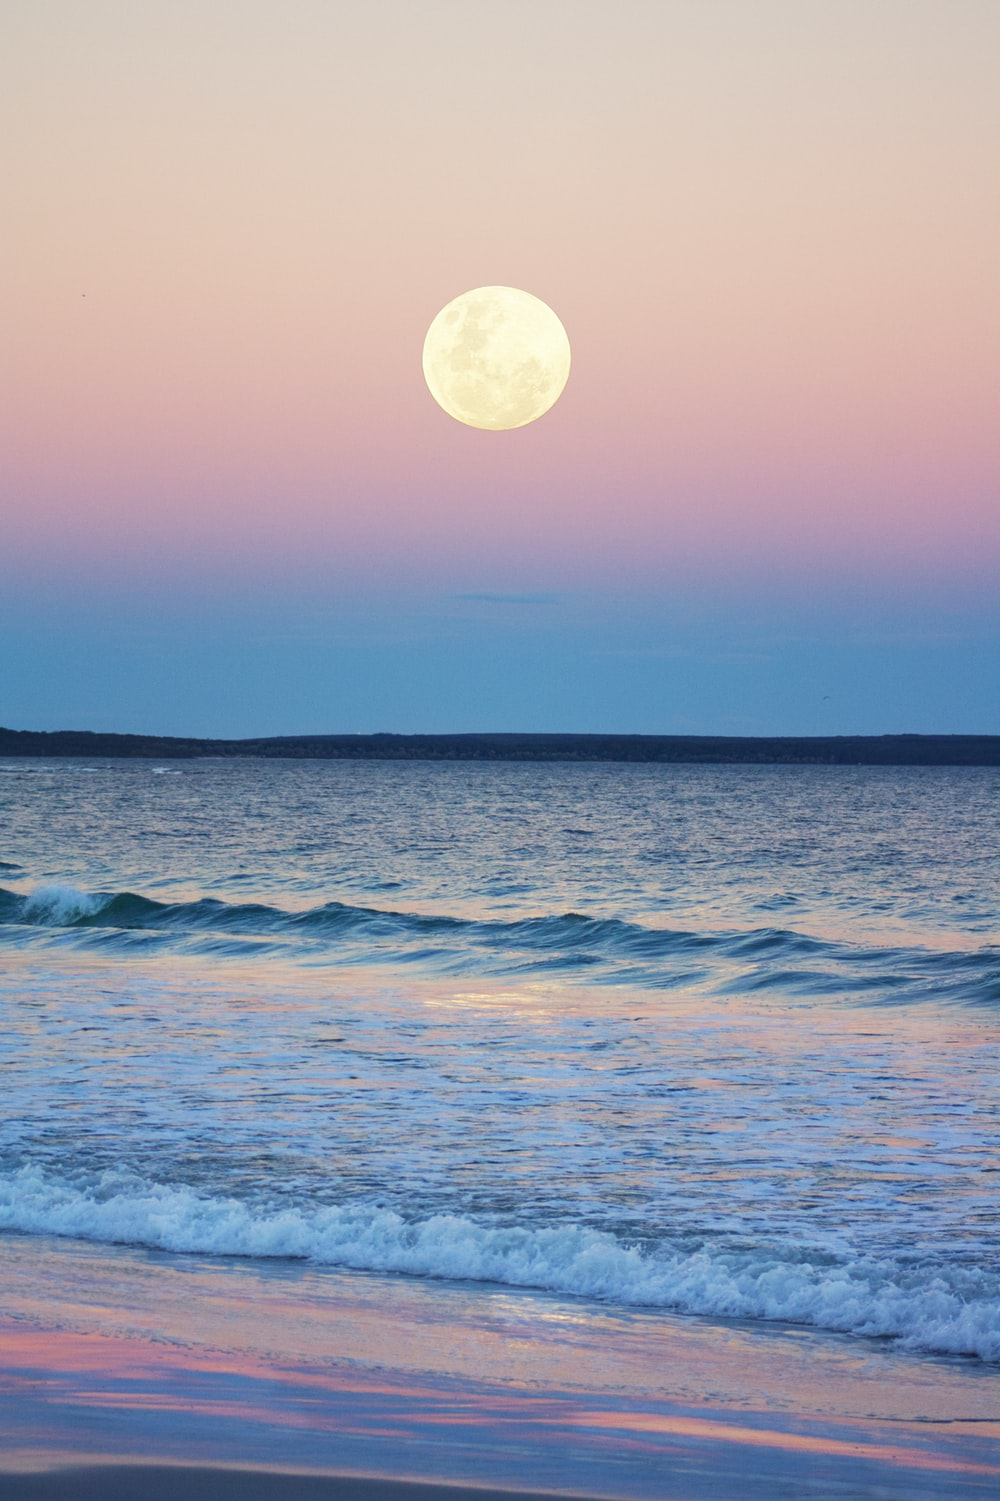 Full Moon Ocean Pictures Download Free Images On Unsplash Wallpaper sunset moon sea rocks waves